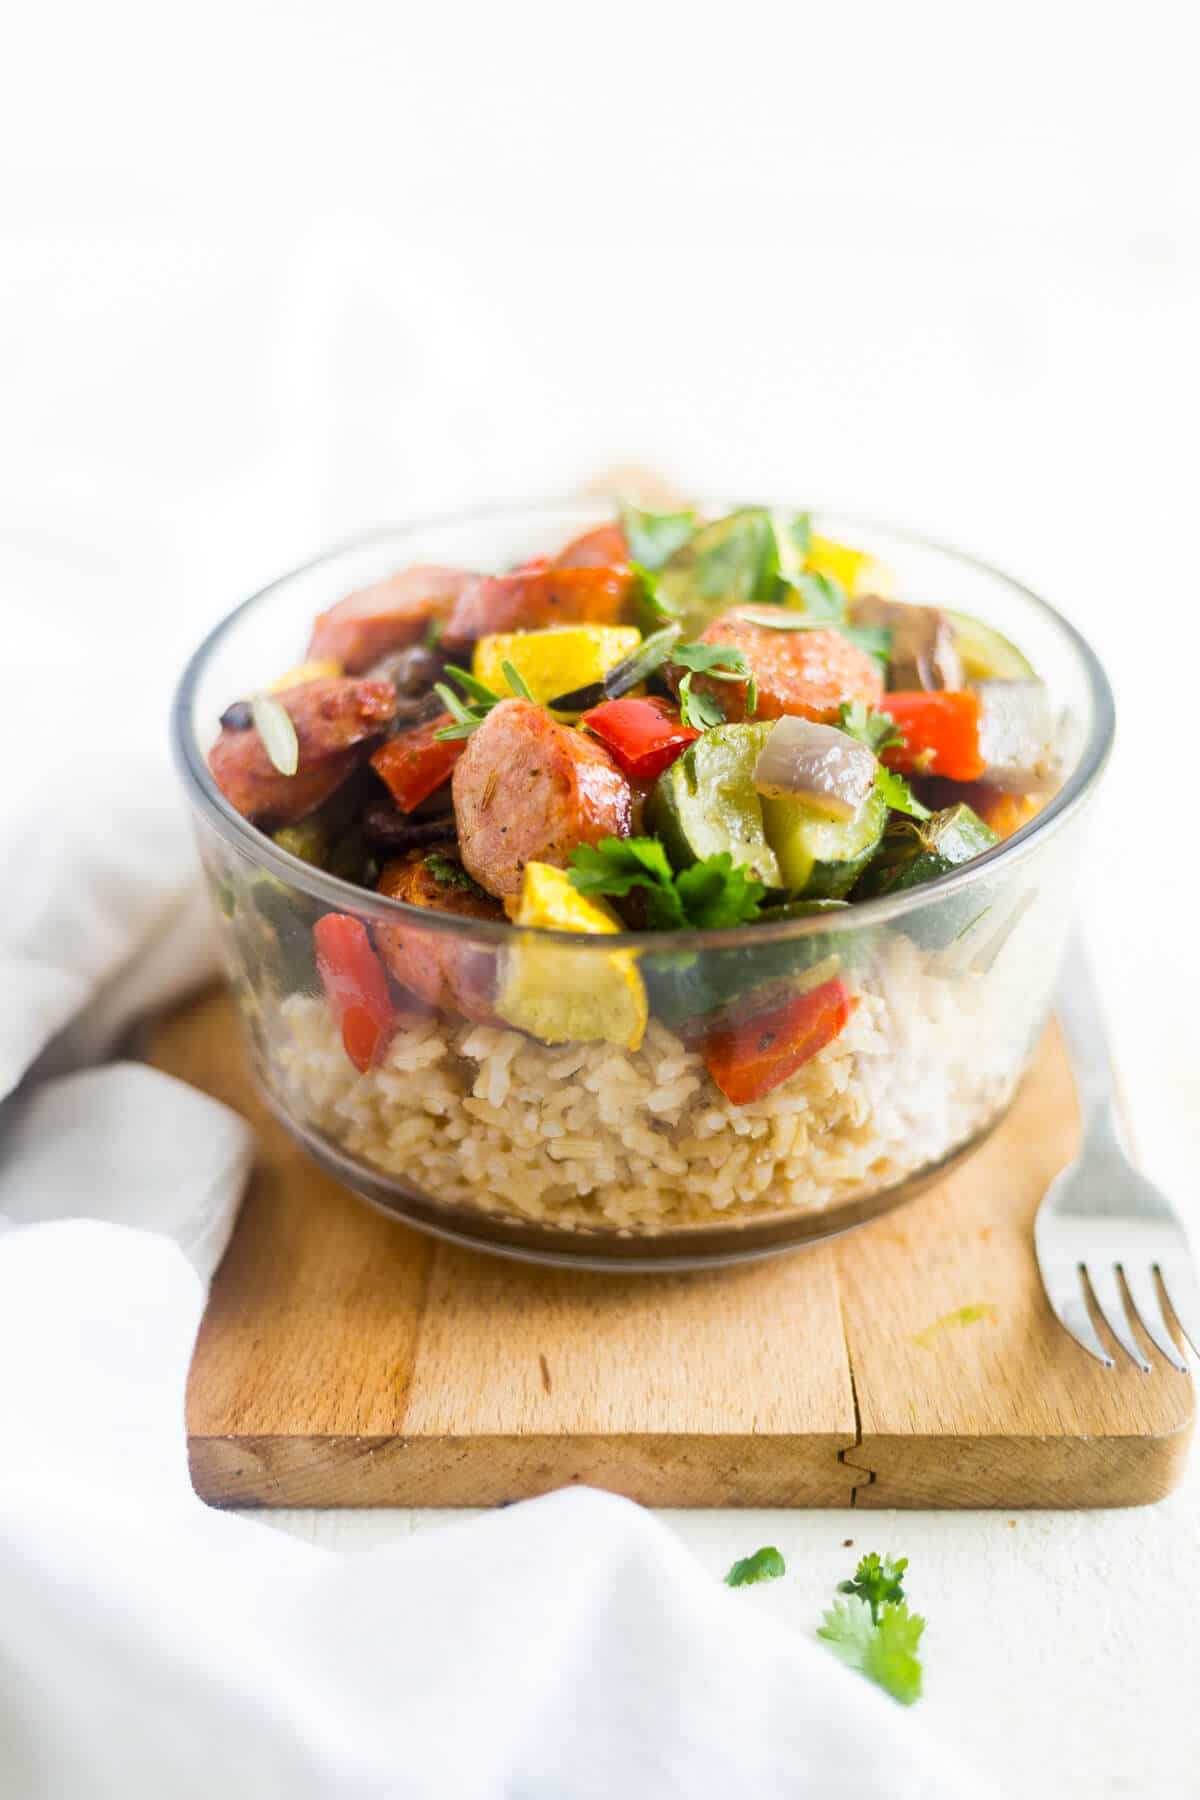 sausage and veggies with brown rice